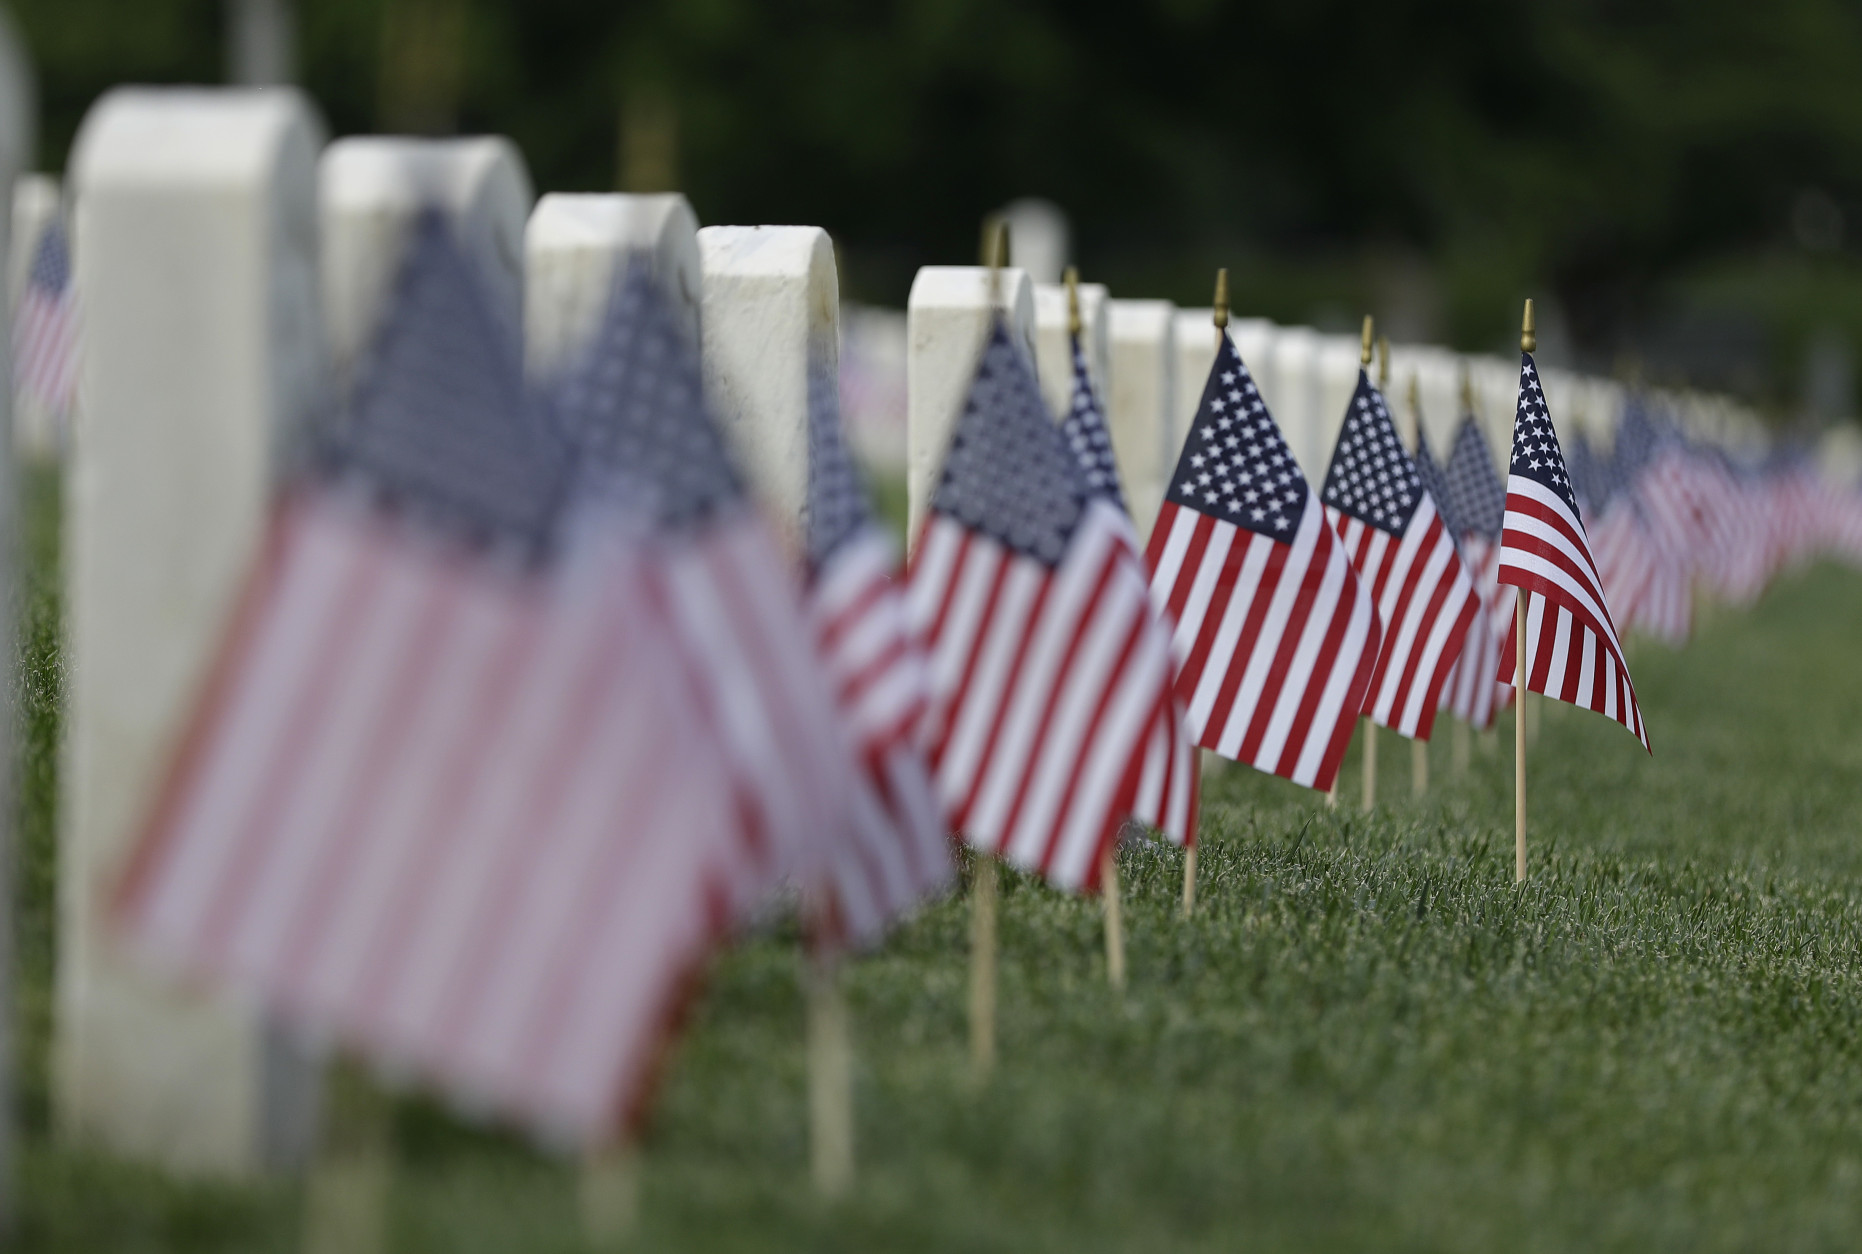 American flags fly next to veterans' graves ahead of Memorial Day at the Crown Hill National Cemetery, Saturday, May 28, 2016, in Indianapolis. (AP Photo/Darron Cummings)